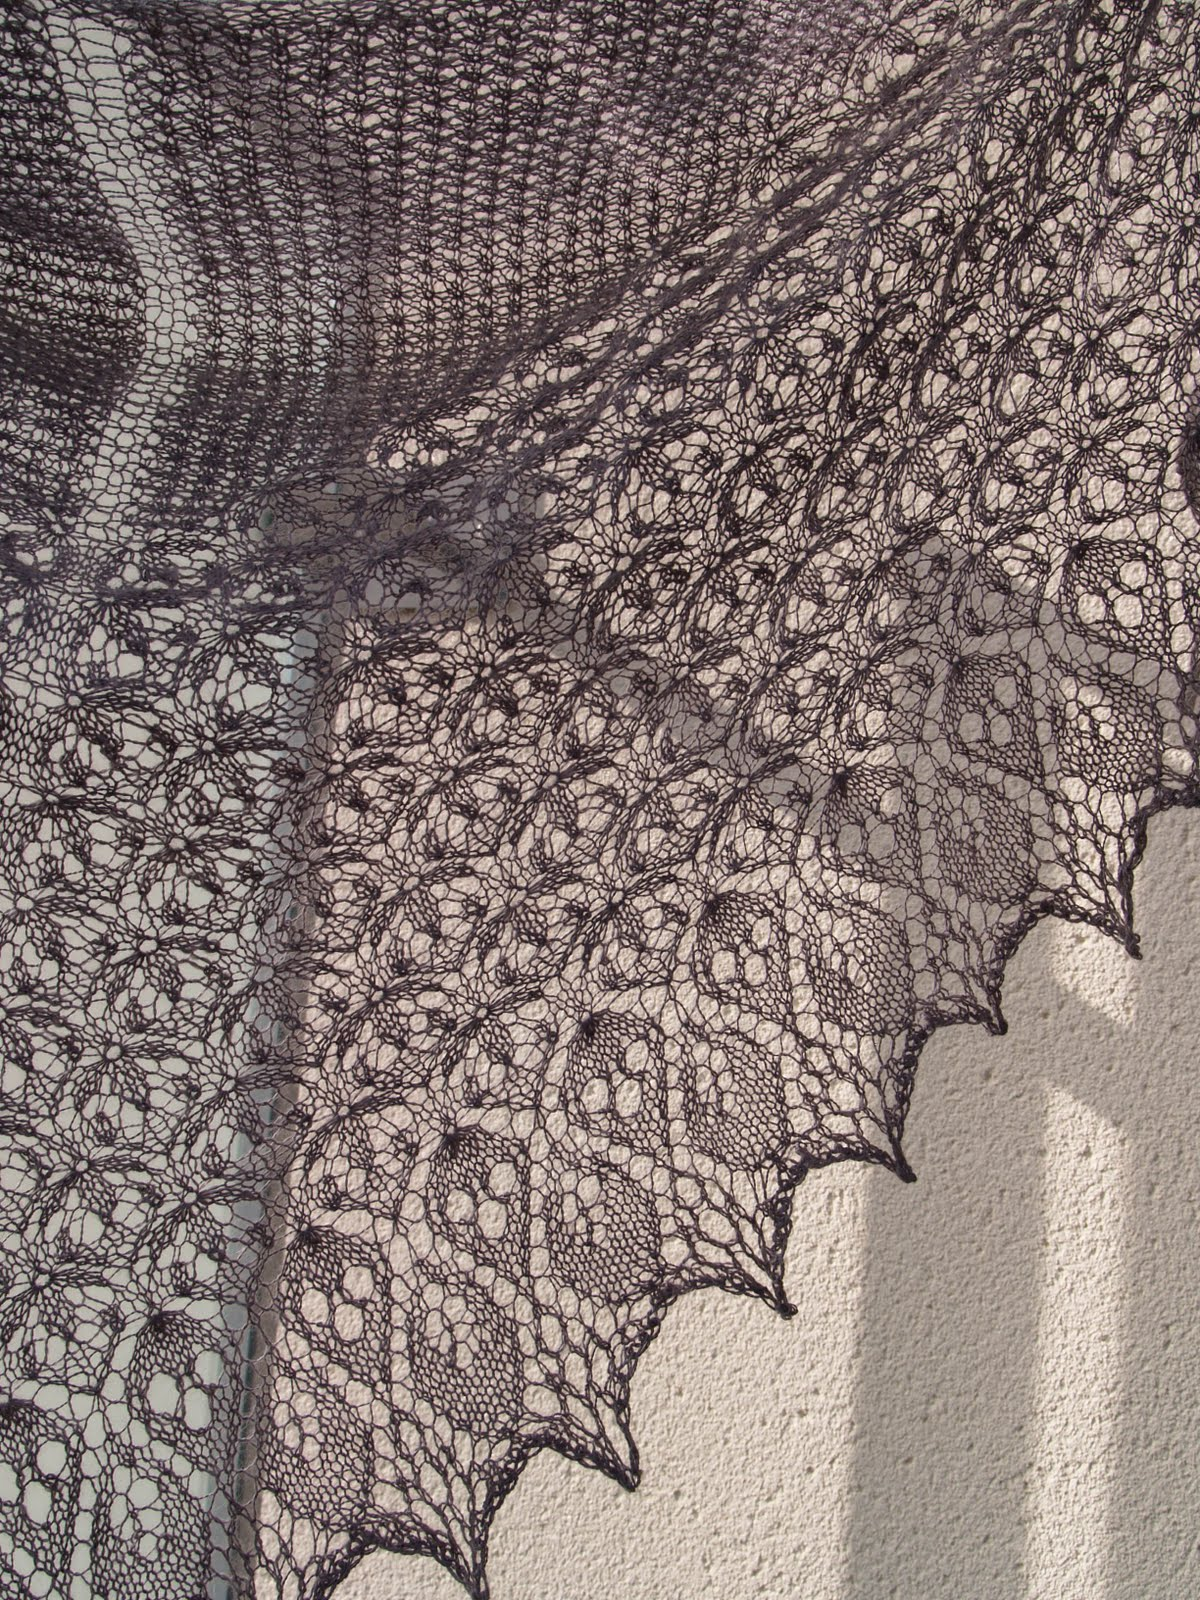 Finished object; Laminaria shawl